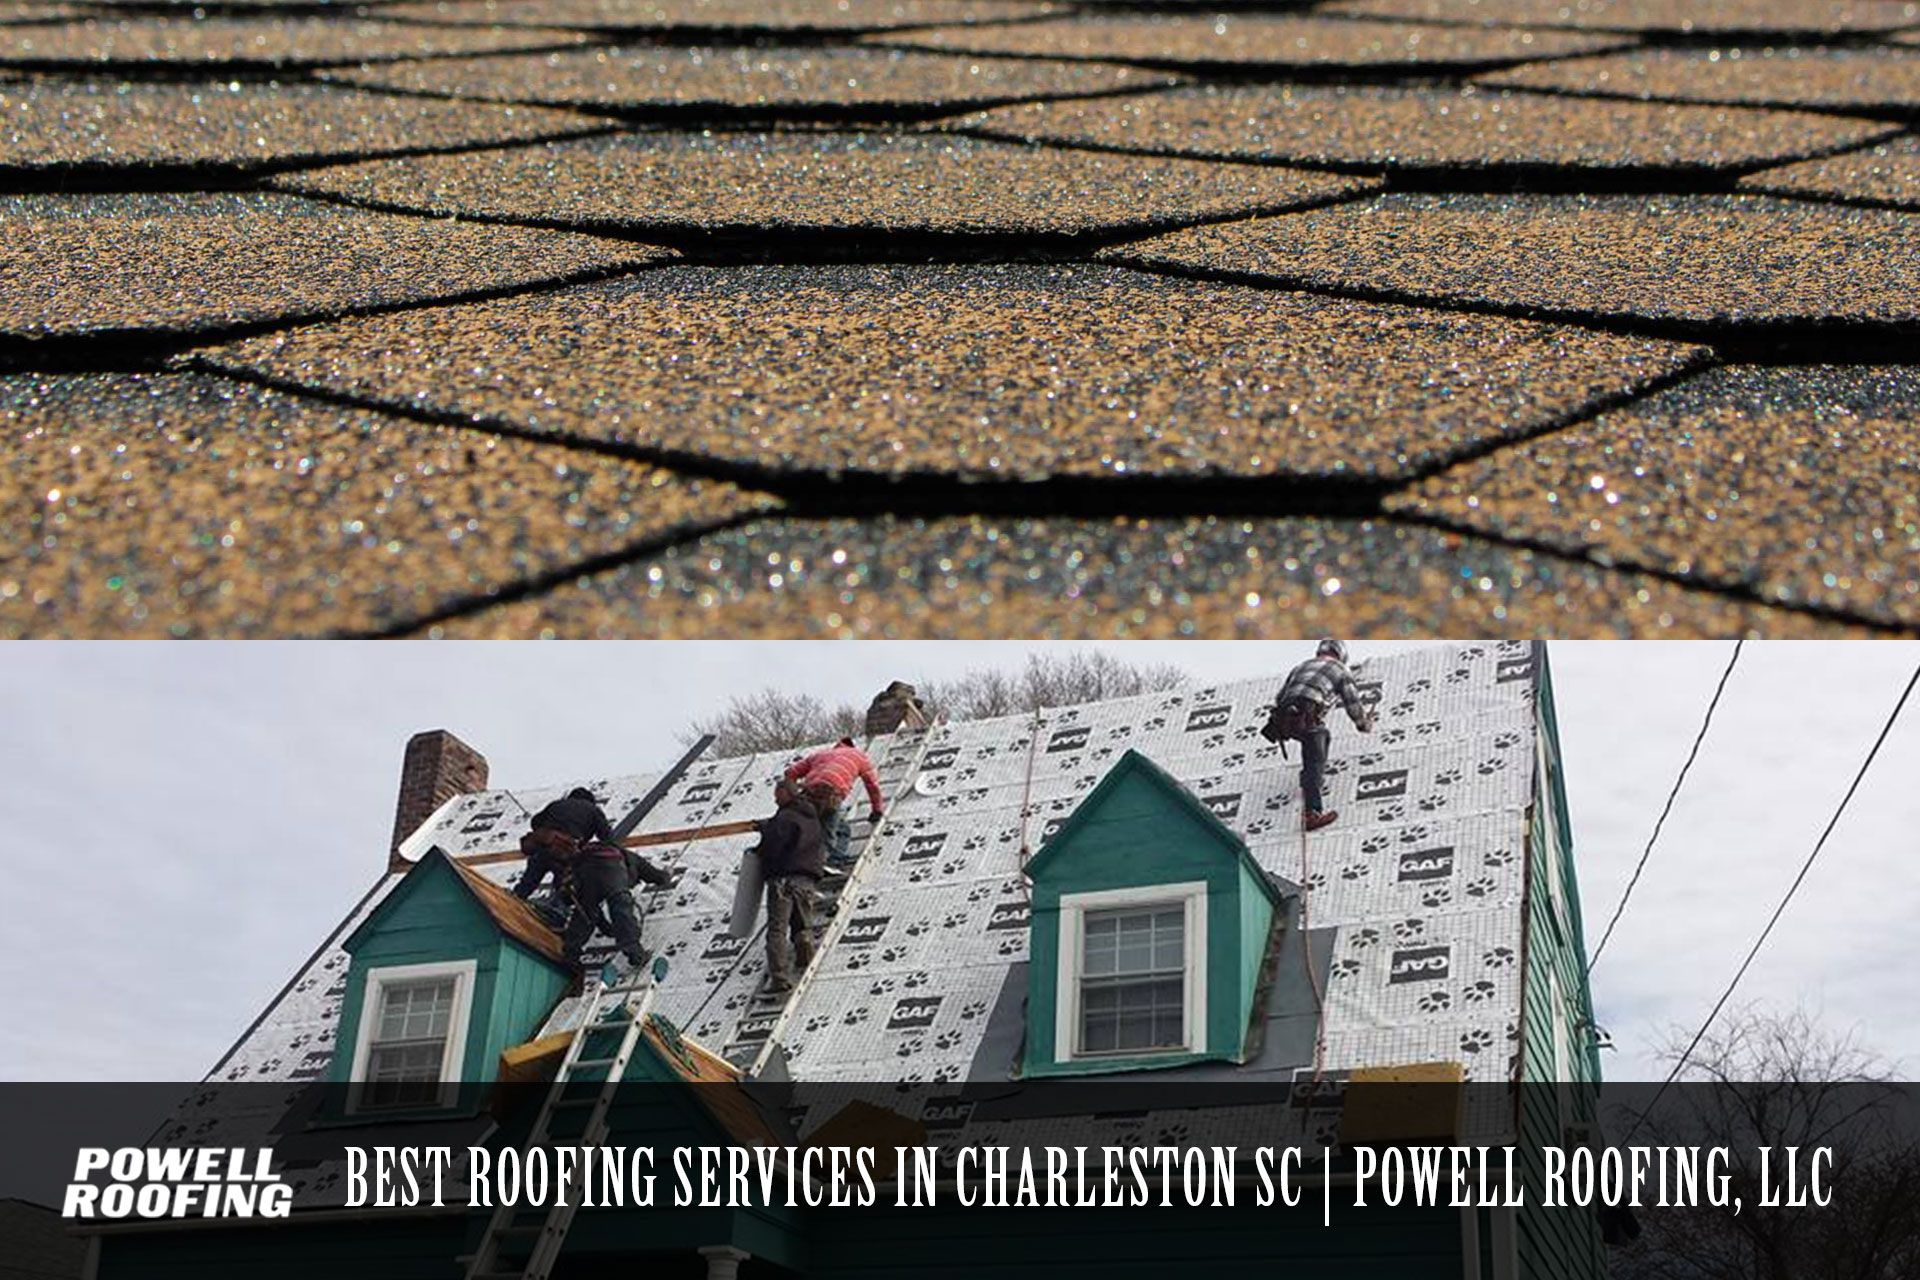 Powell Roofing Provides The Matchless Roofing Services In Charleston Sc You Can Swear By Our Work We Will Make Your Estate With Images Cool Roof Roofing Roofing Services